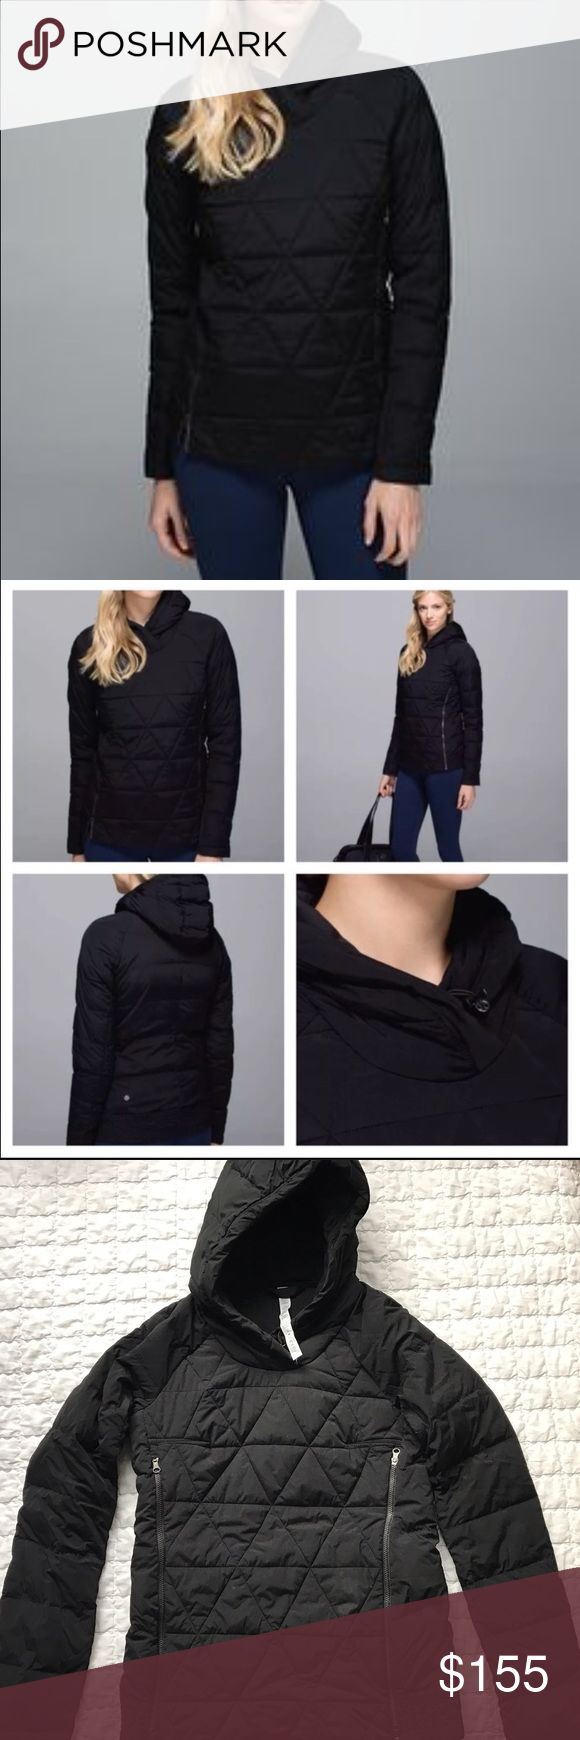 Lululemon puffed pullover jacket Perfect condition, no stains or rips! Only worn once around the house for few hours. Black size 4 pullover with zippers that you can open up for air. (Last pic shows) smoke free home! lululemon athletica Jackets & Coats Puffers